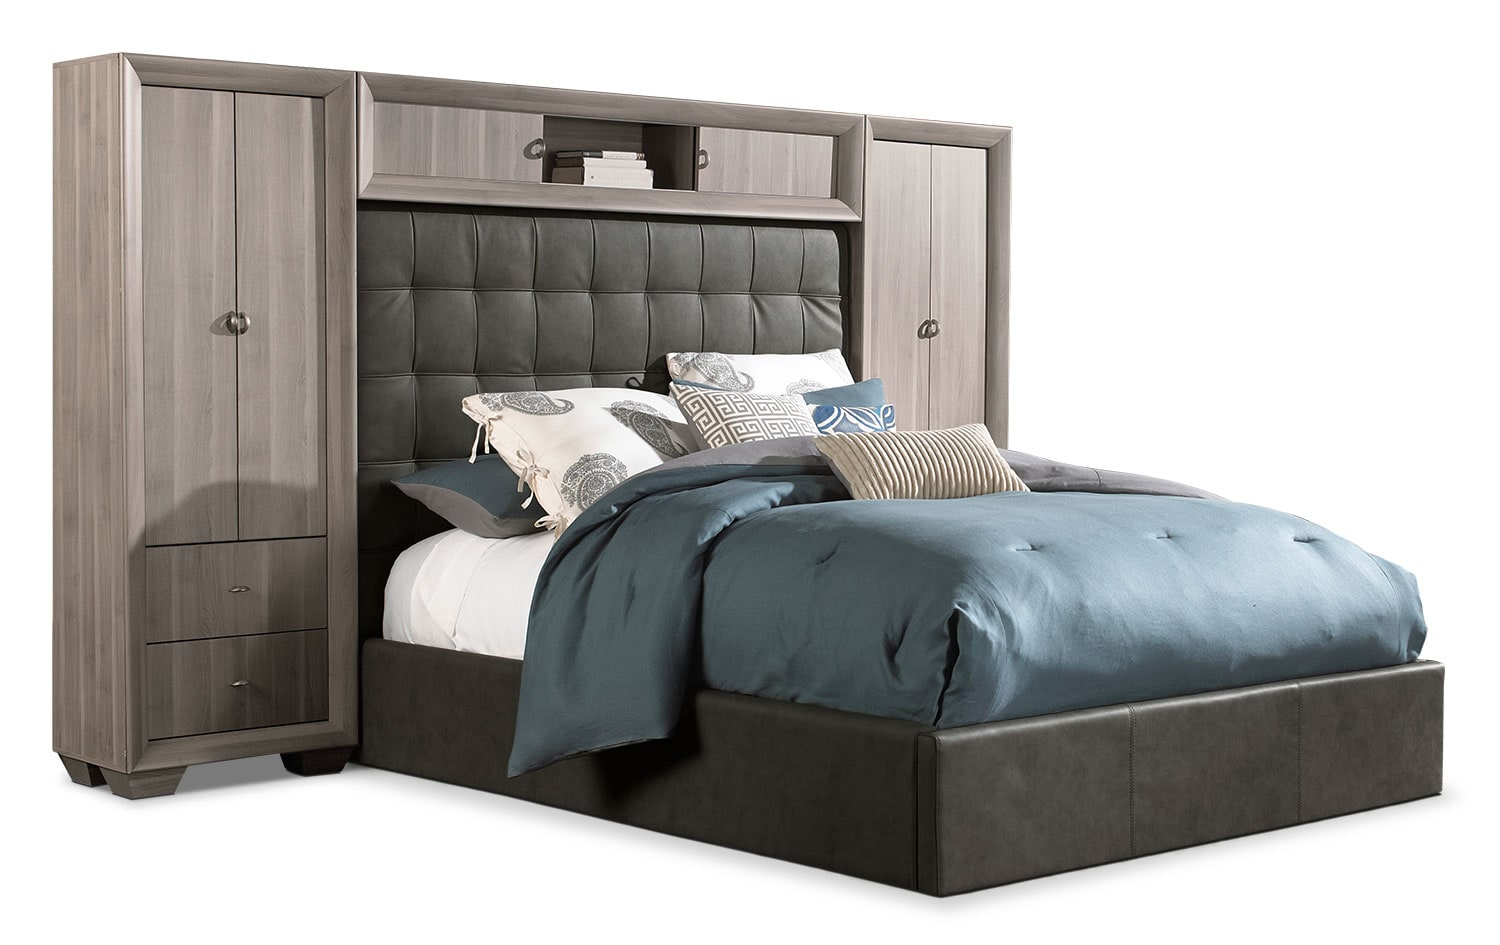 Bedroom Furniture - Franklin 5-Piece Queen Wallbed - Taupe